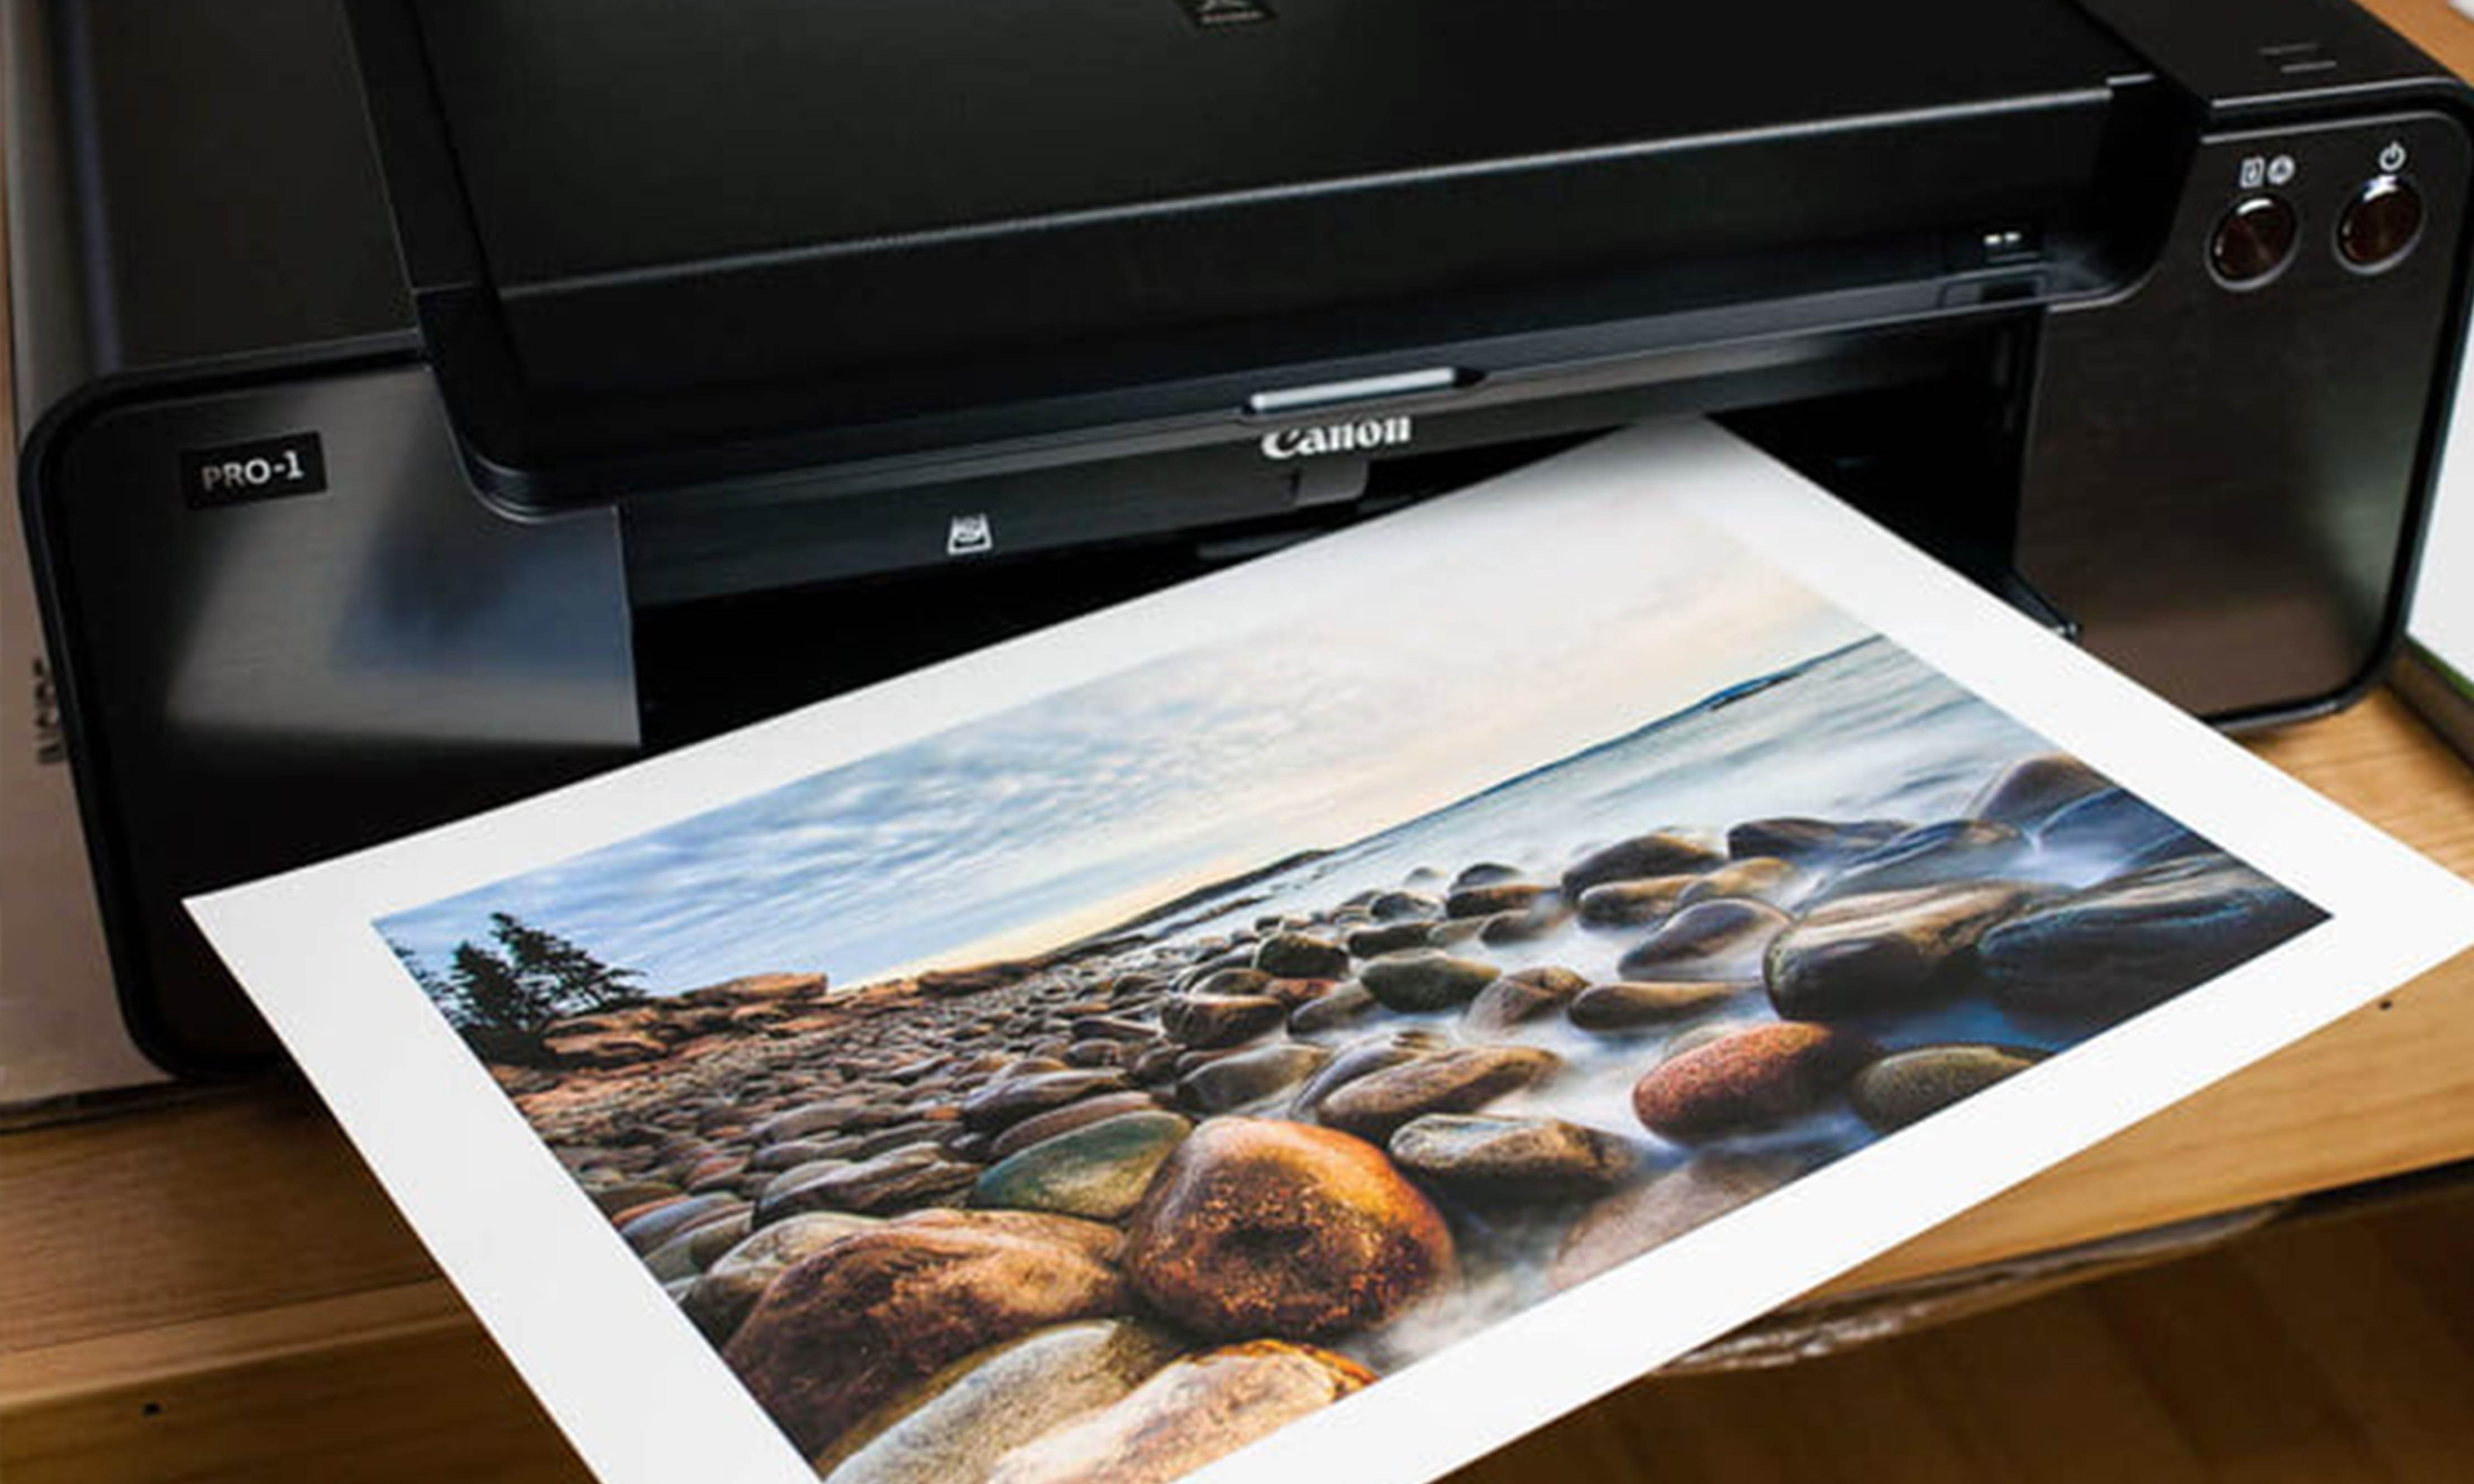 Top 10 Best All-in-One Printer in 2019